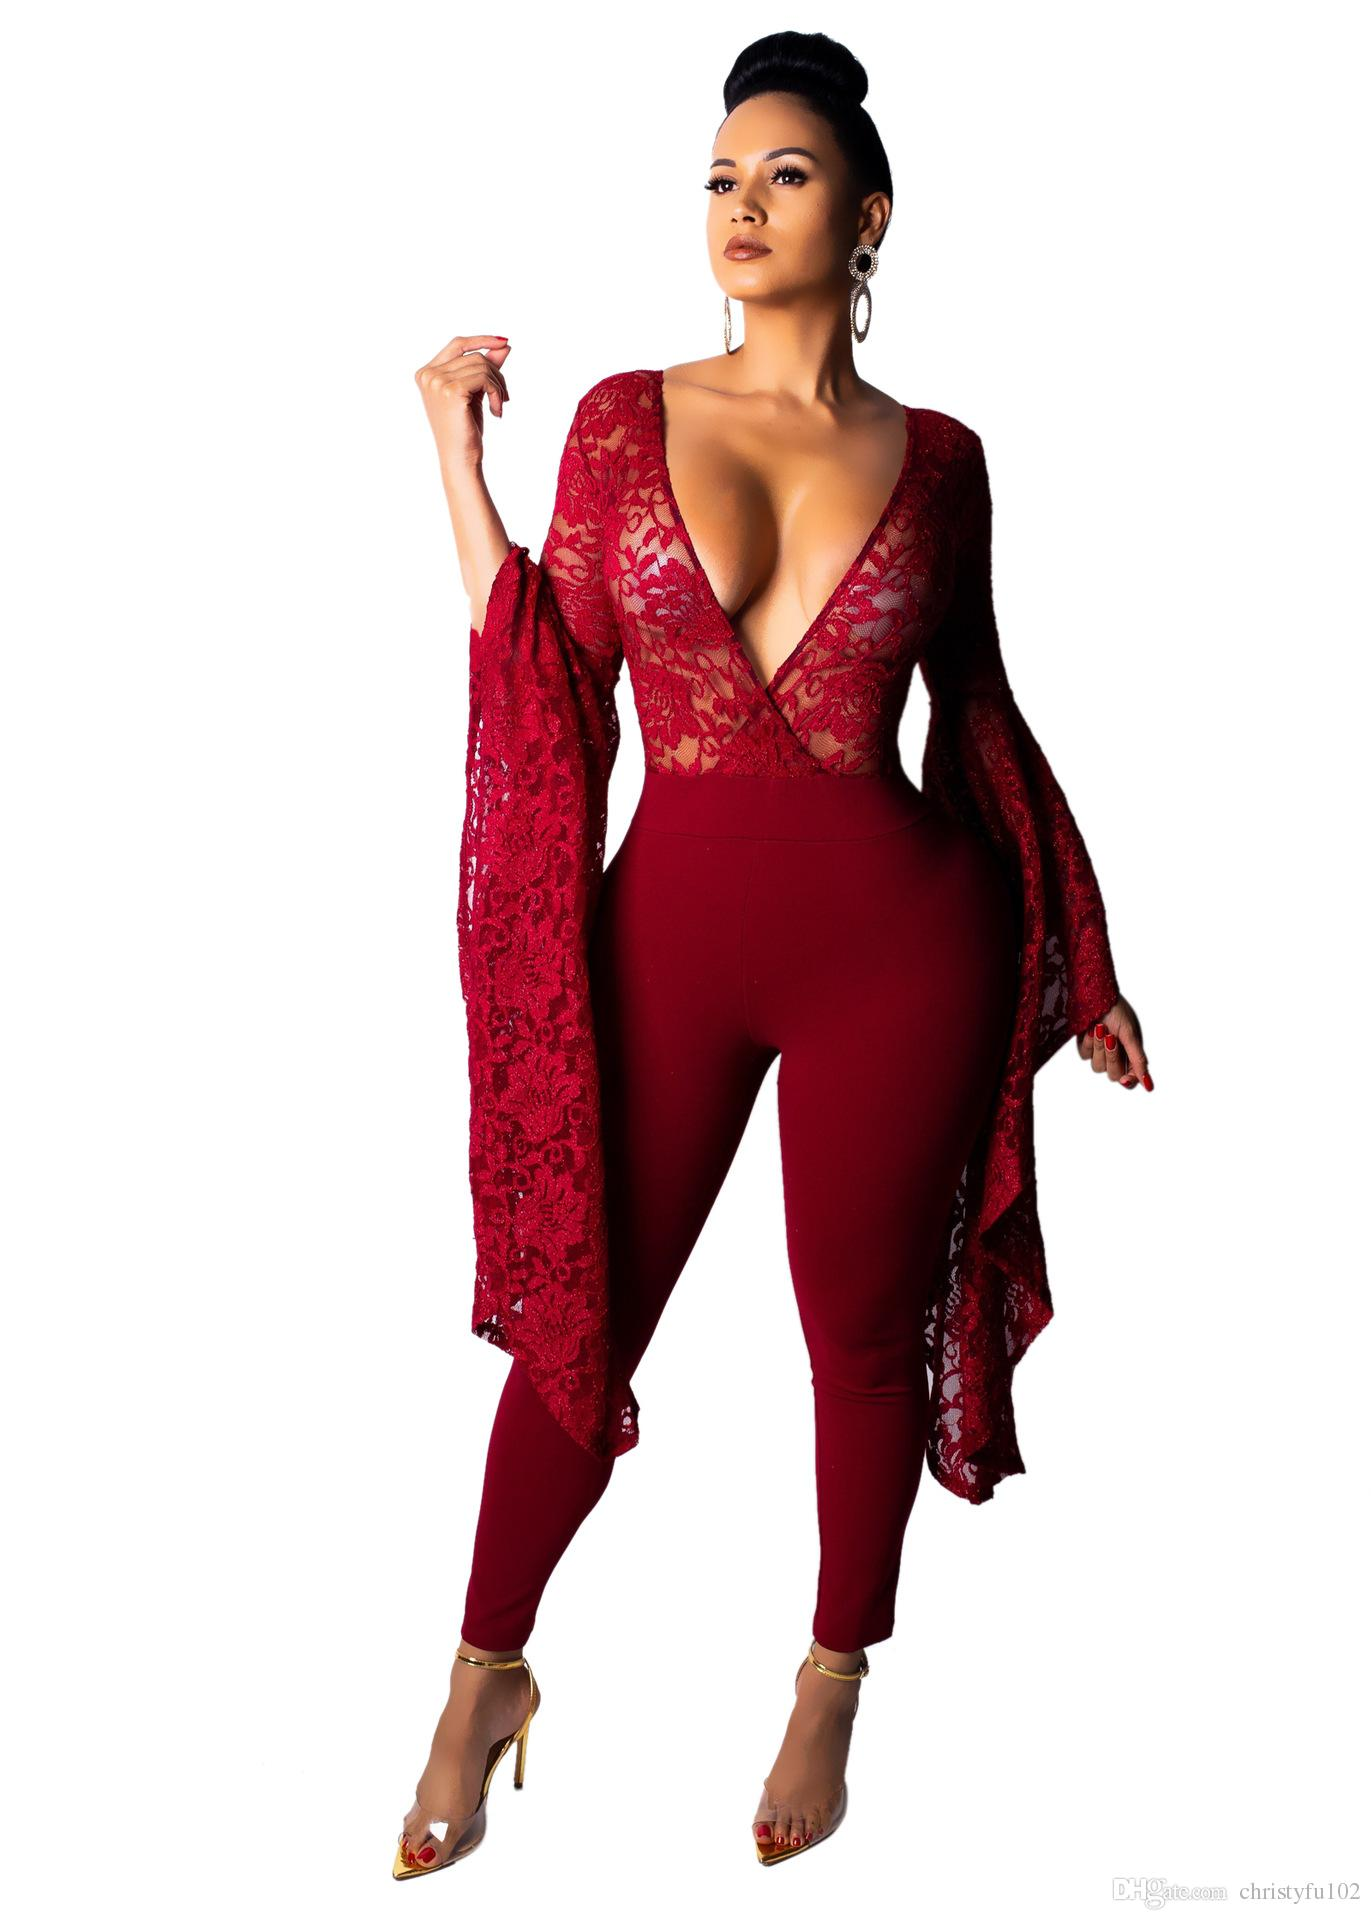 a3cbd3e662f 2019 2019 Women S New Fashion Sexy Lace Over Size Jumpsuits Ladies Night  Club Winter Vestidos Rompers Party High Street Wide Sleeves Playsuits From  ...